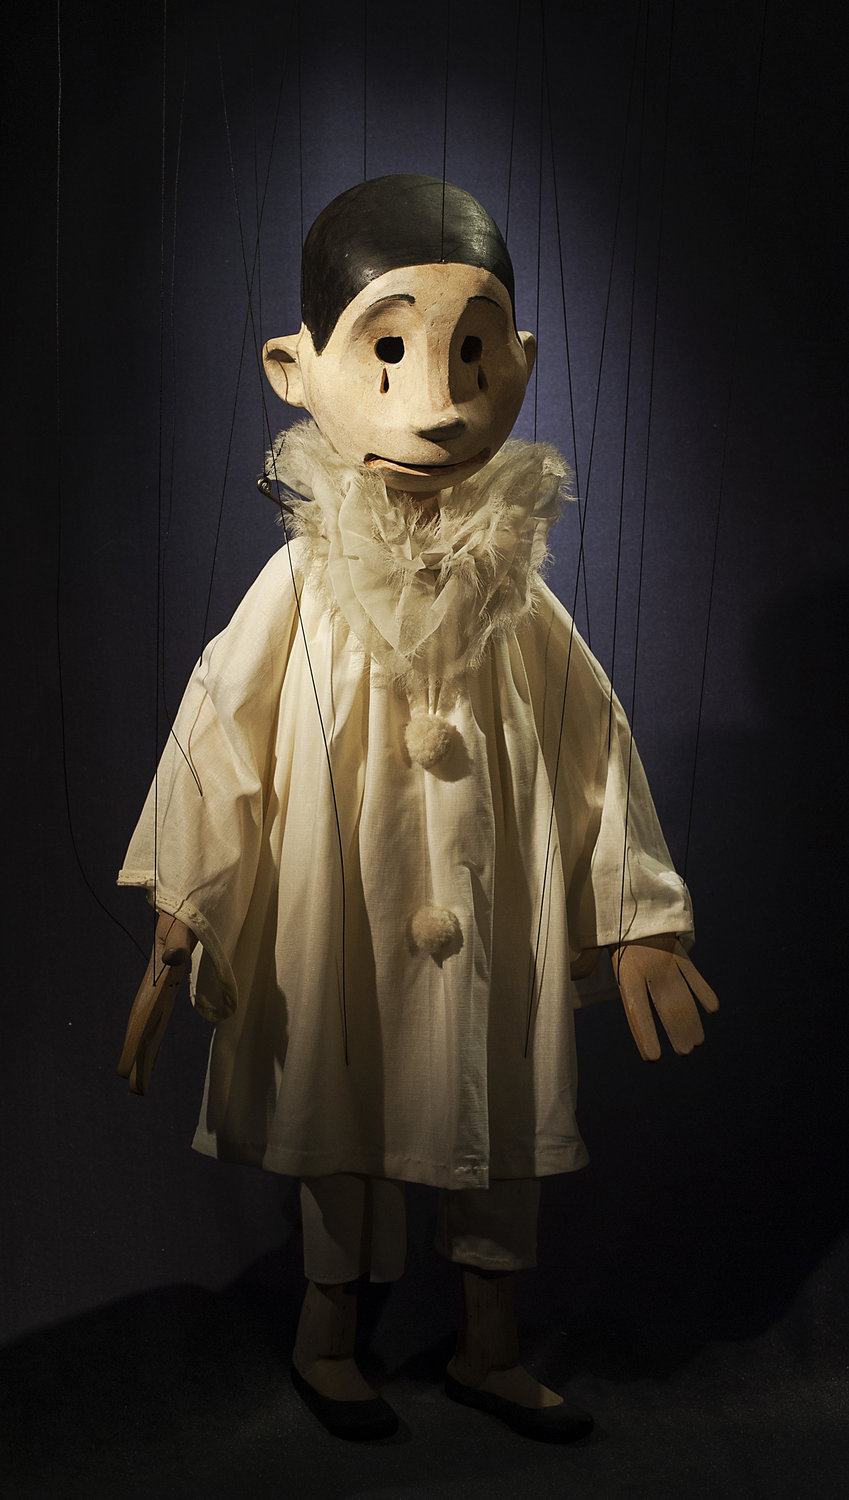 Pierrot, string puppet, in <em>A Gift for Columbine</em> (1988) by Coad Canada Puppets, direction: Luman Coad, design: Arlyn Coad. Award: Citation of Excellence in the Art of Puppetry from UNIMA-USA. Photo: Luman Coad